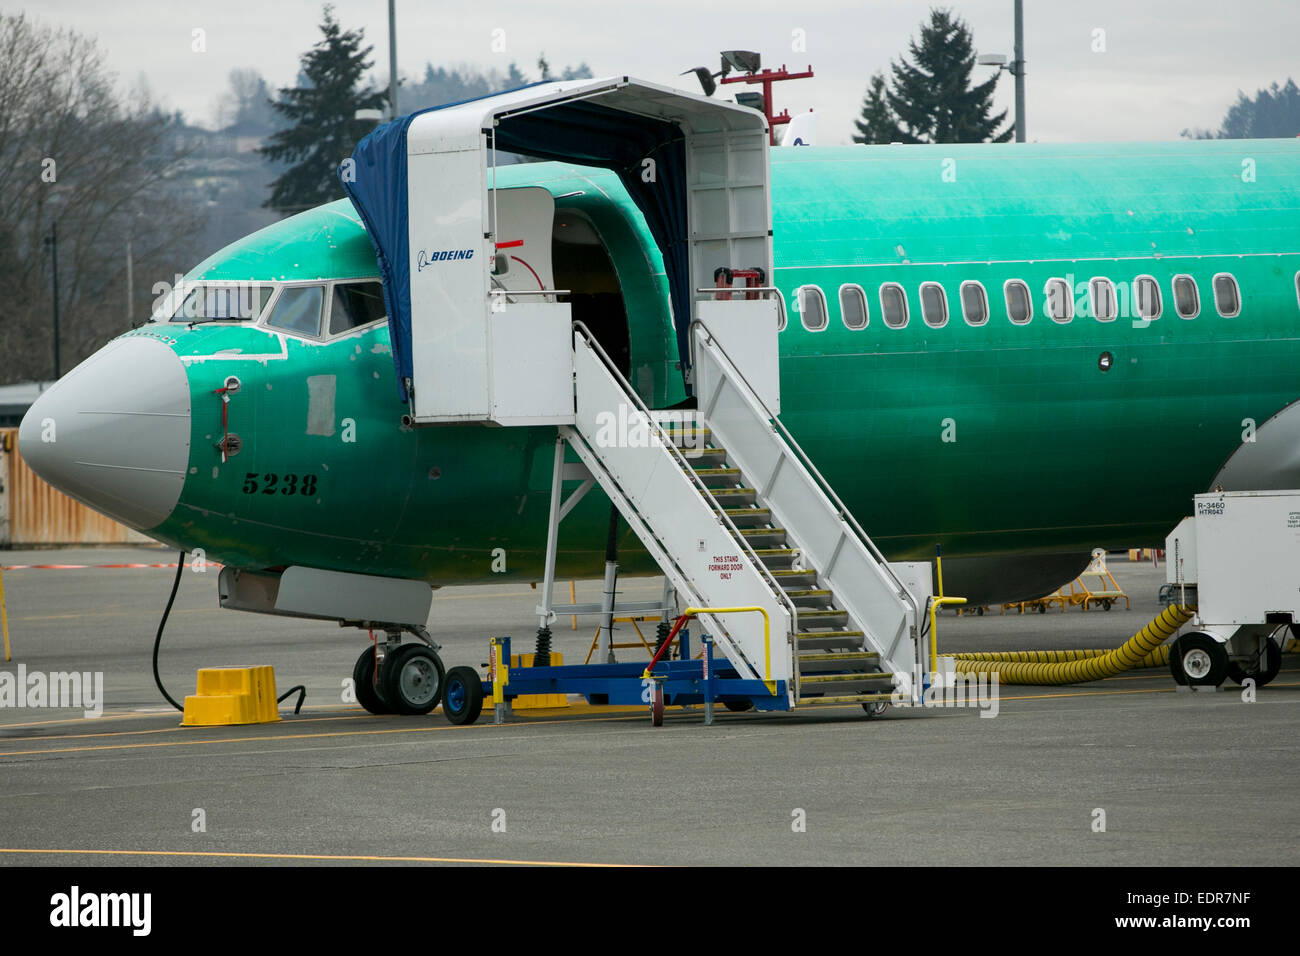 Boeing 737 aircraft await painting at the Boeing Renton Factory, where all 737 airplanes are built in Renton, Washington. - Stock Image